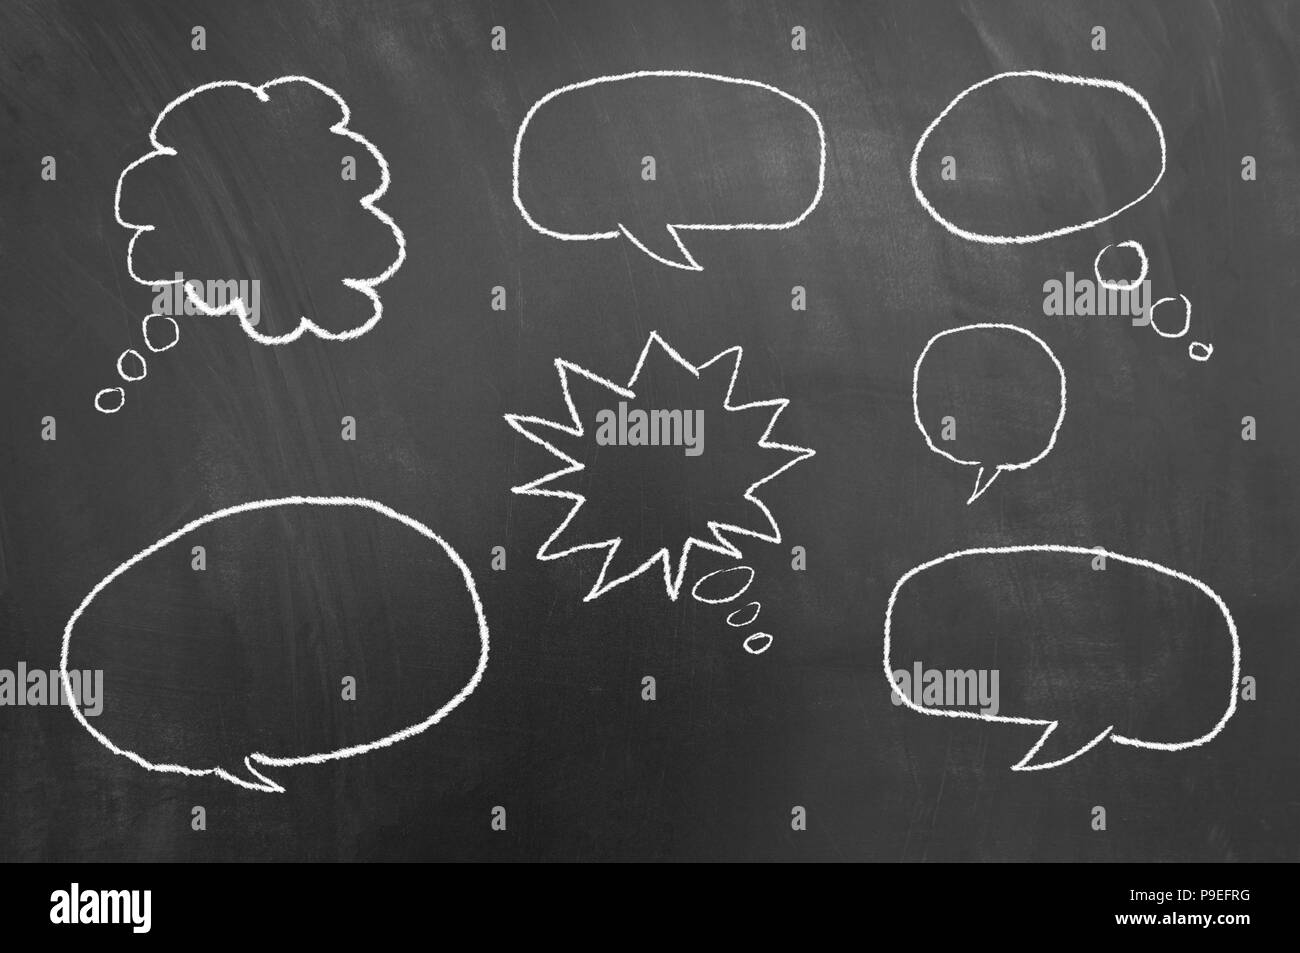 Multiple speech thought bubbles drawing on chalkboard or blackboard as communication balloon thought expression cloud concept - Stock Image